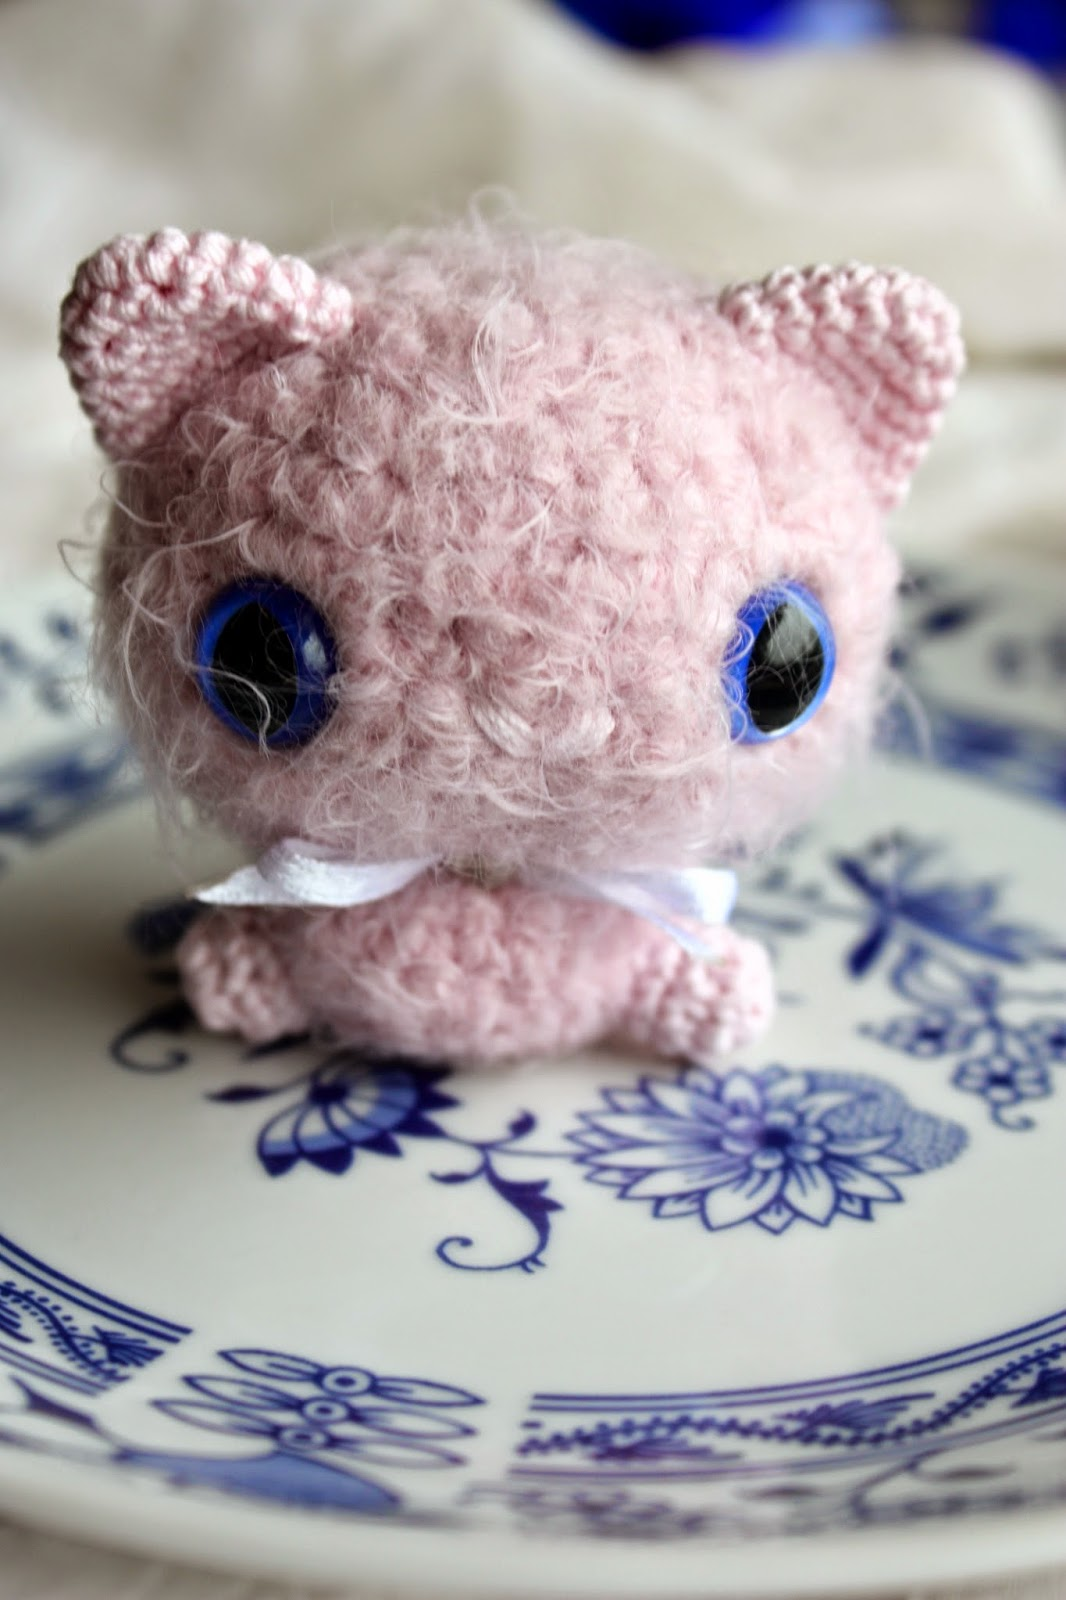 Crocheting Cats : Amigurumi creations by Happyamigurumi: Tiny Amigurumi Cat in process